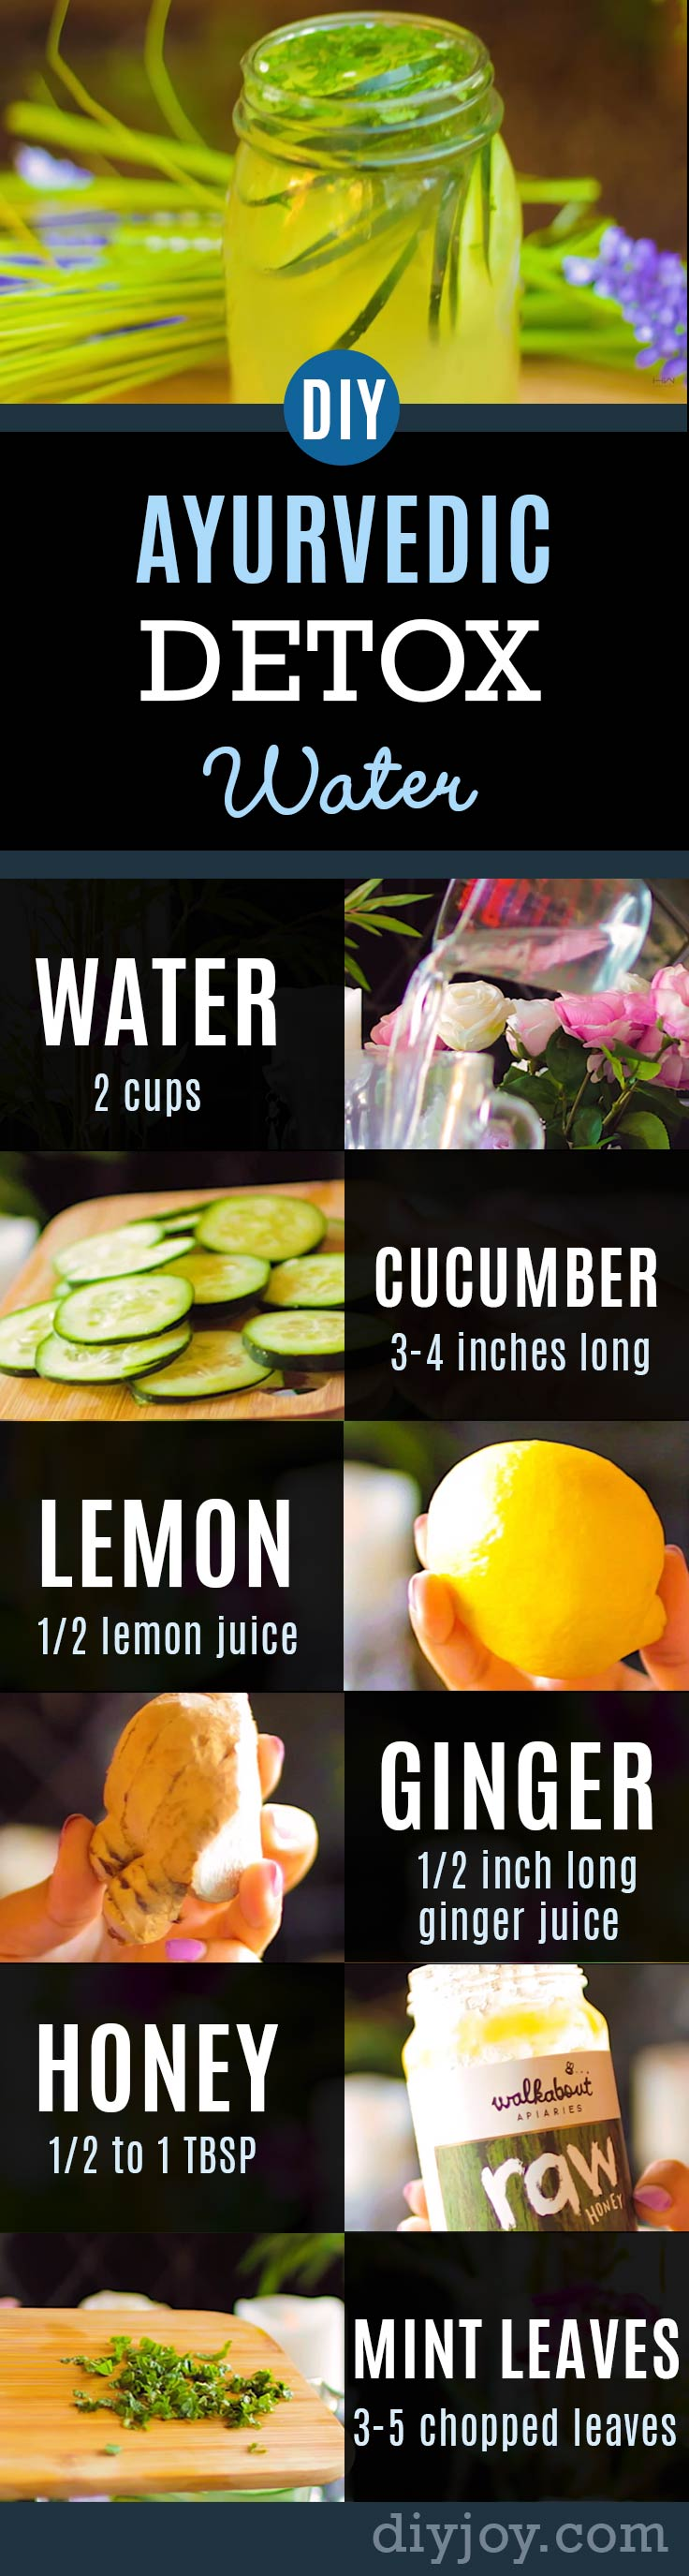 Ayurvedic Detox Water Weight Loss Clear Skin Flat Belly